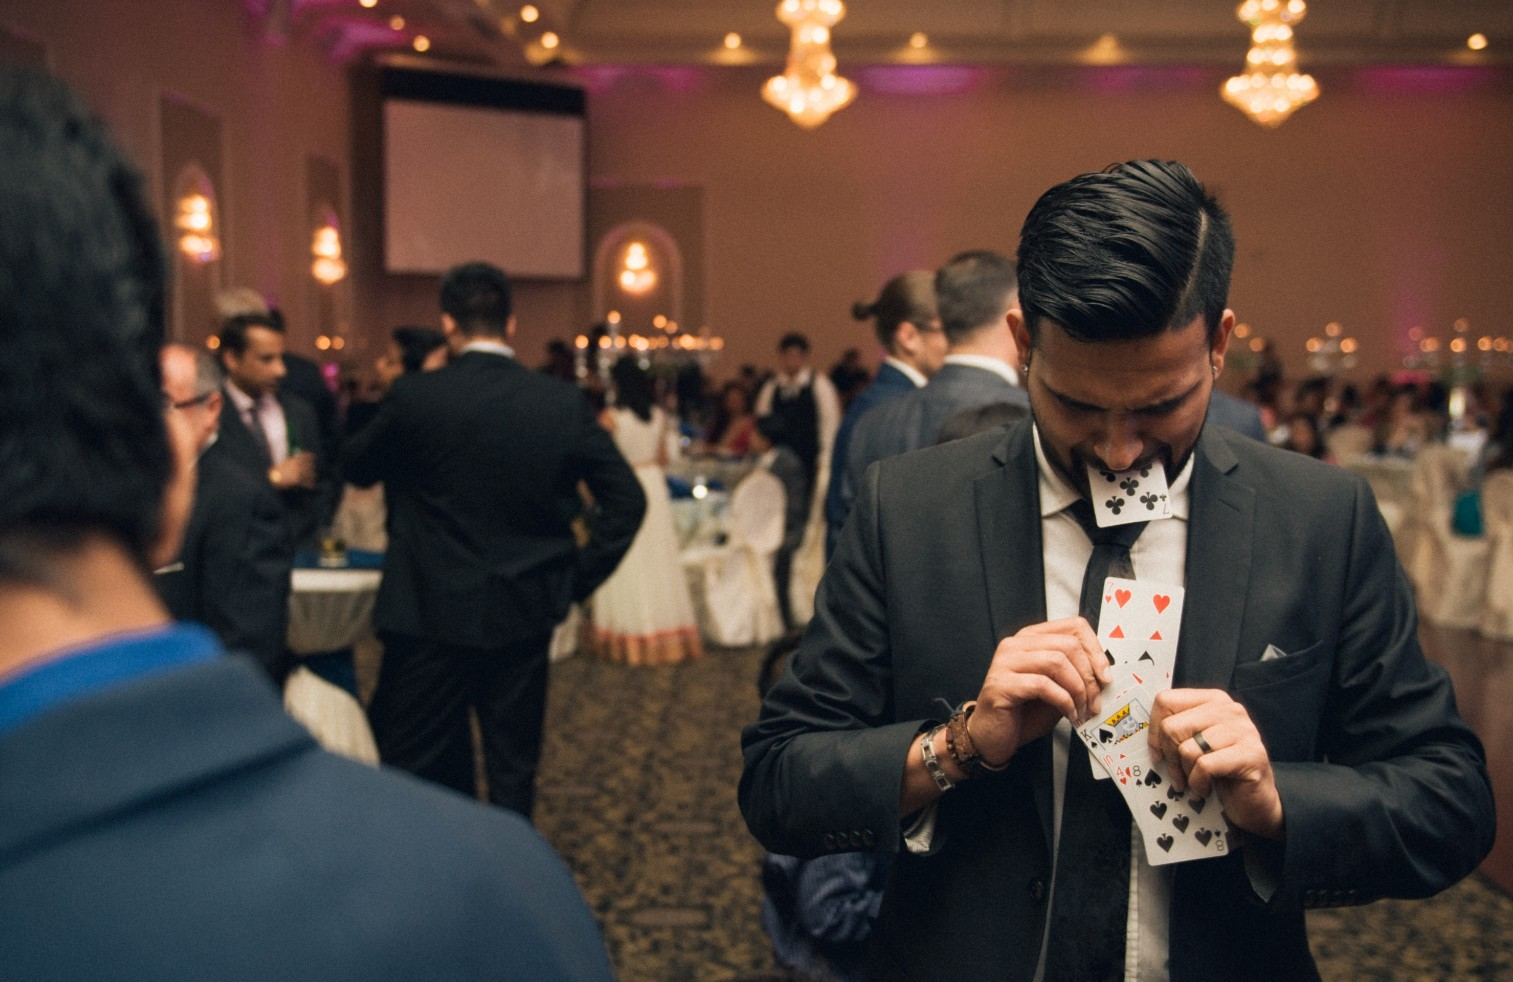 toronto wedding magician has cards coming out of his mouth